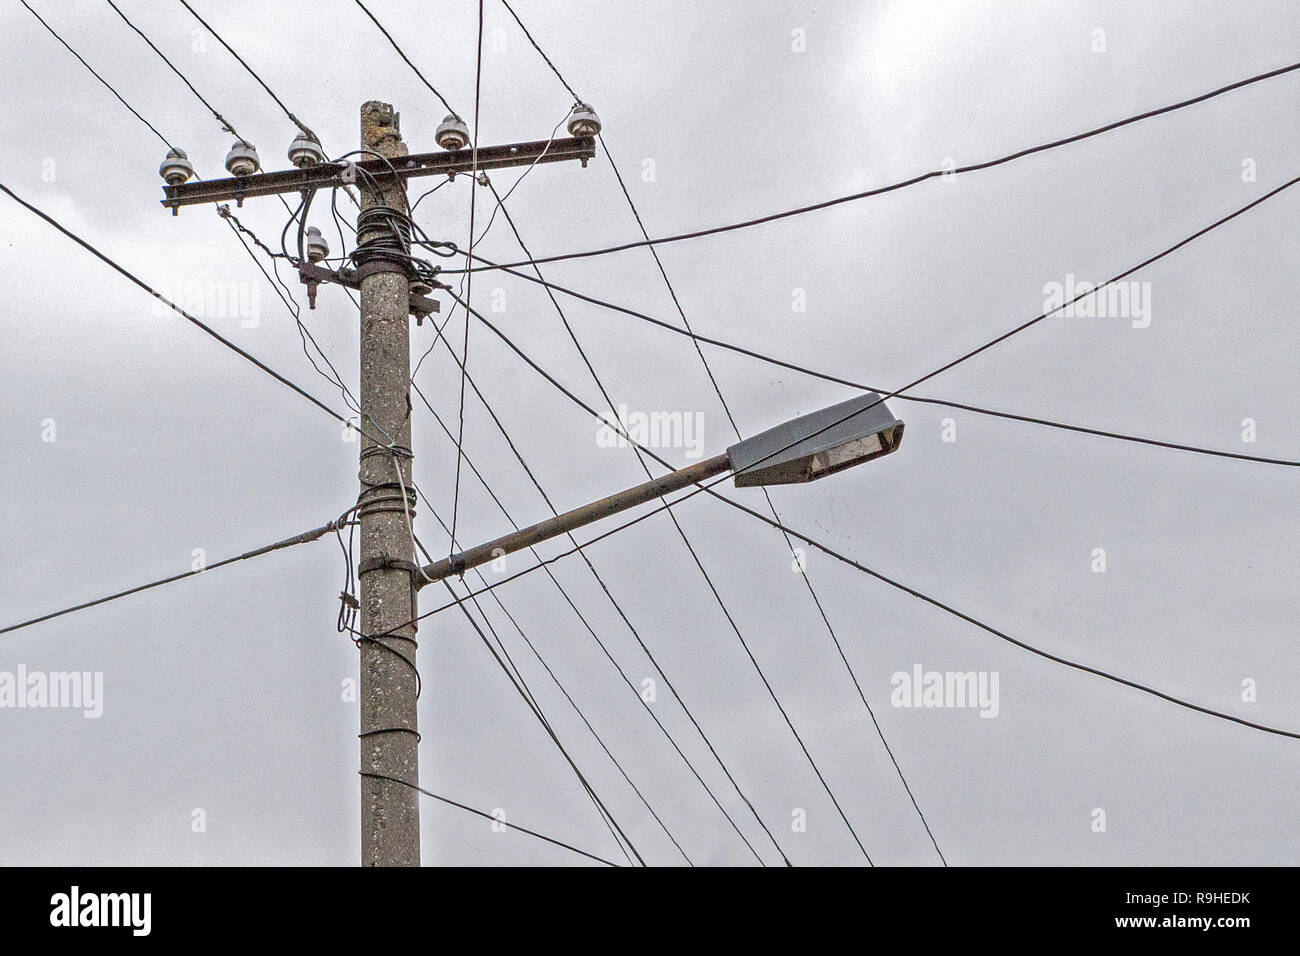 Electric Telephone Stock Photos Images Wiring Sky Box Dual Use Of Pole For Wires Street Light Village Albania Image